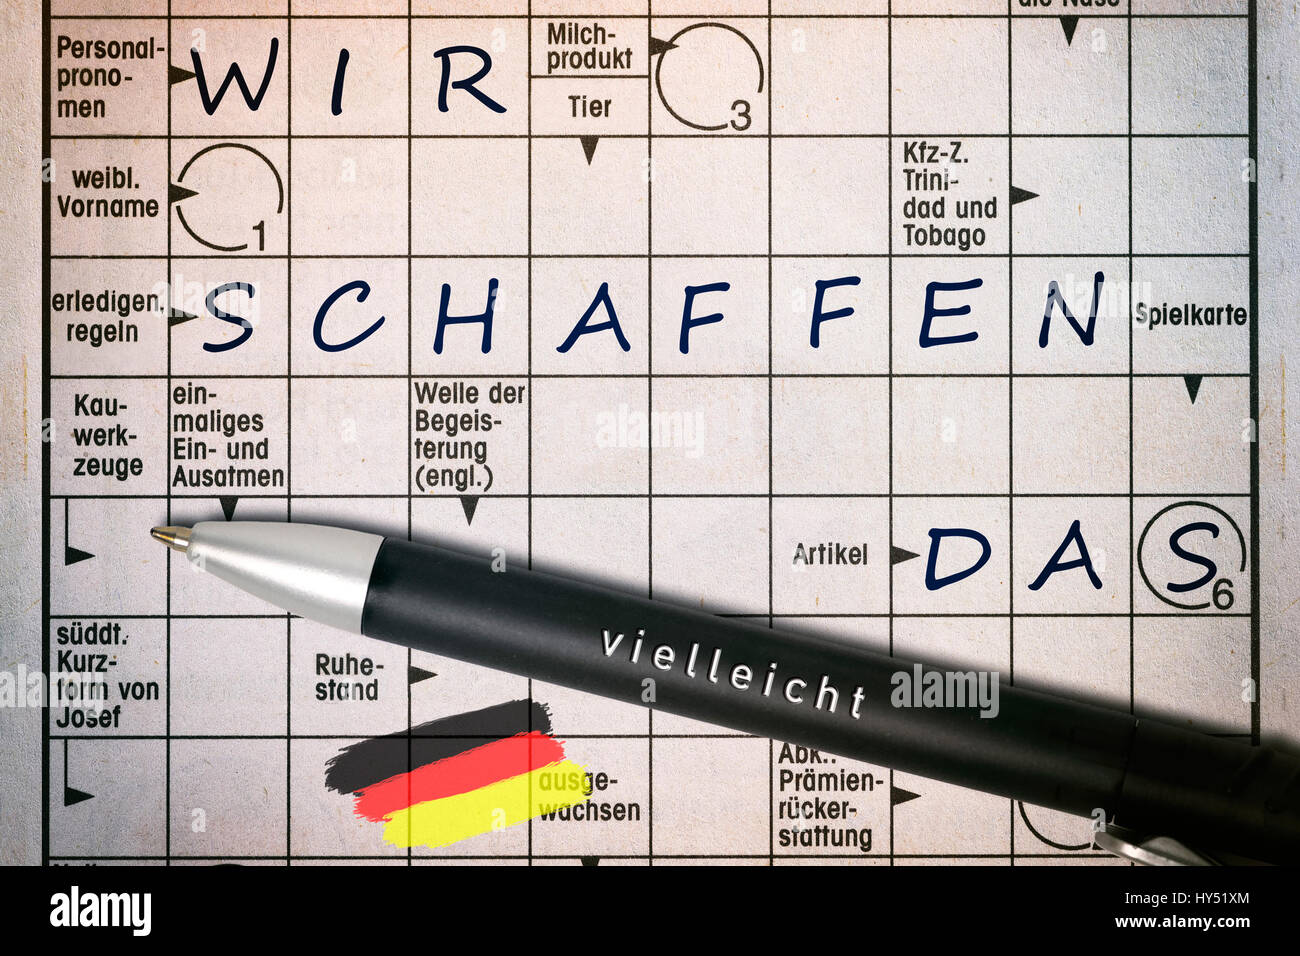 Schon Crossword Puzzles With The Concepts We, Create, The Label Maybe On A  Ballpoint Pen